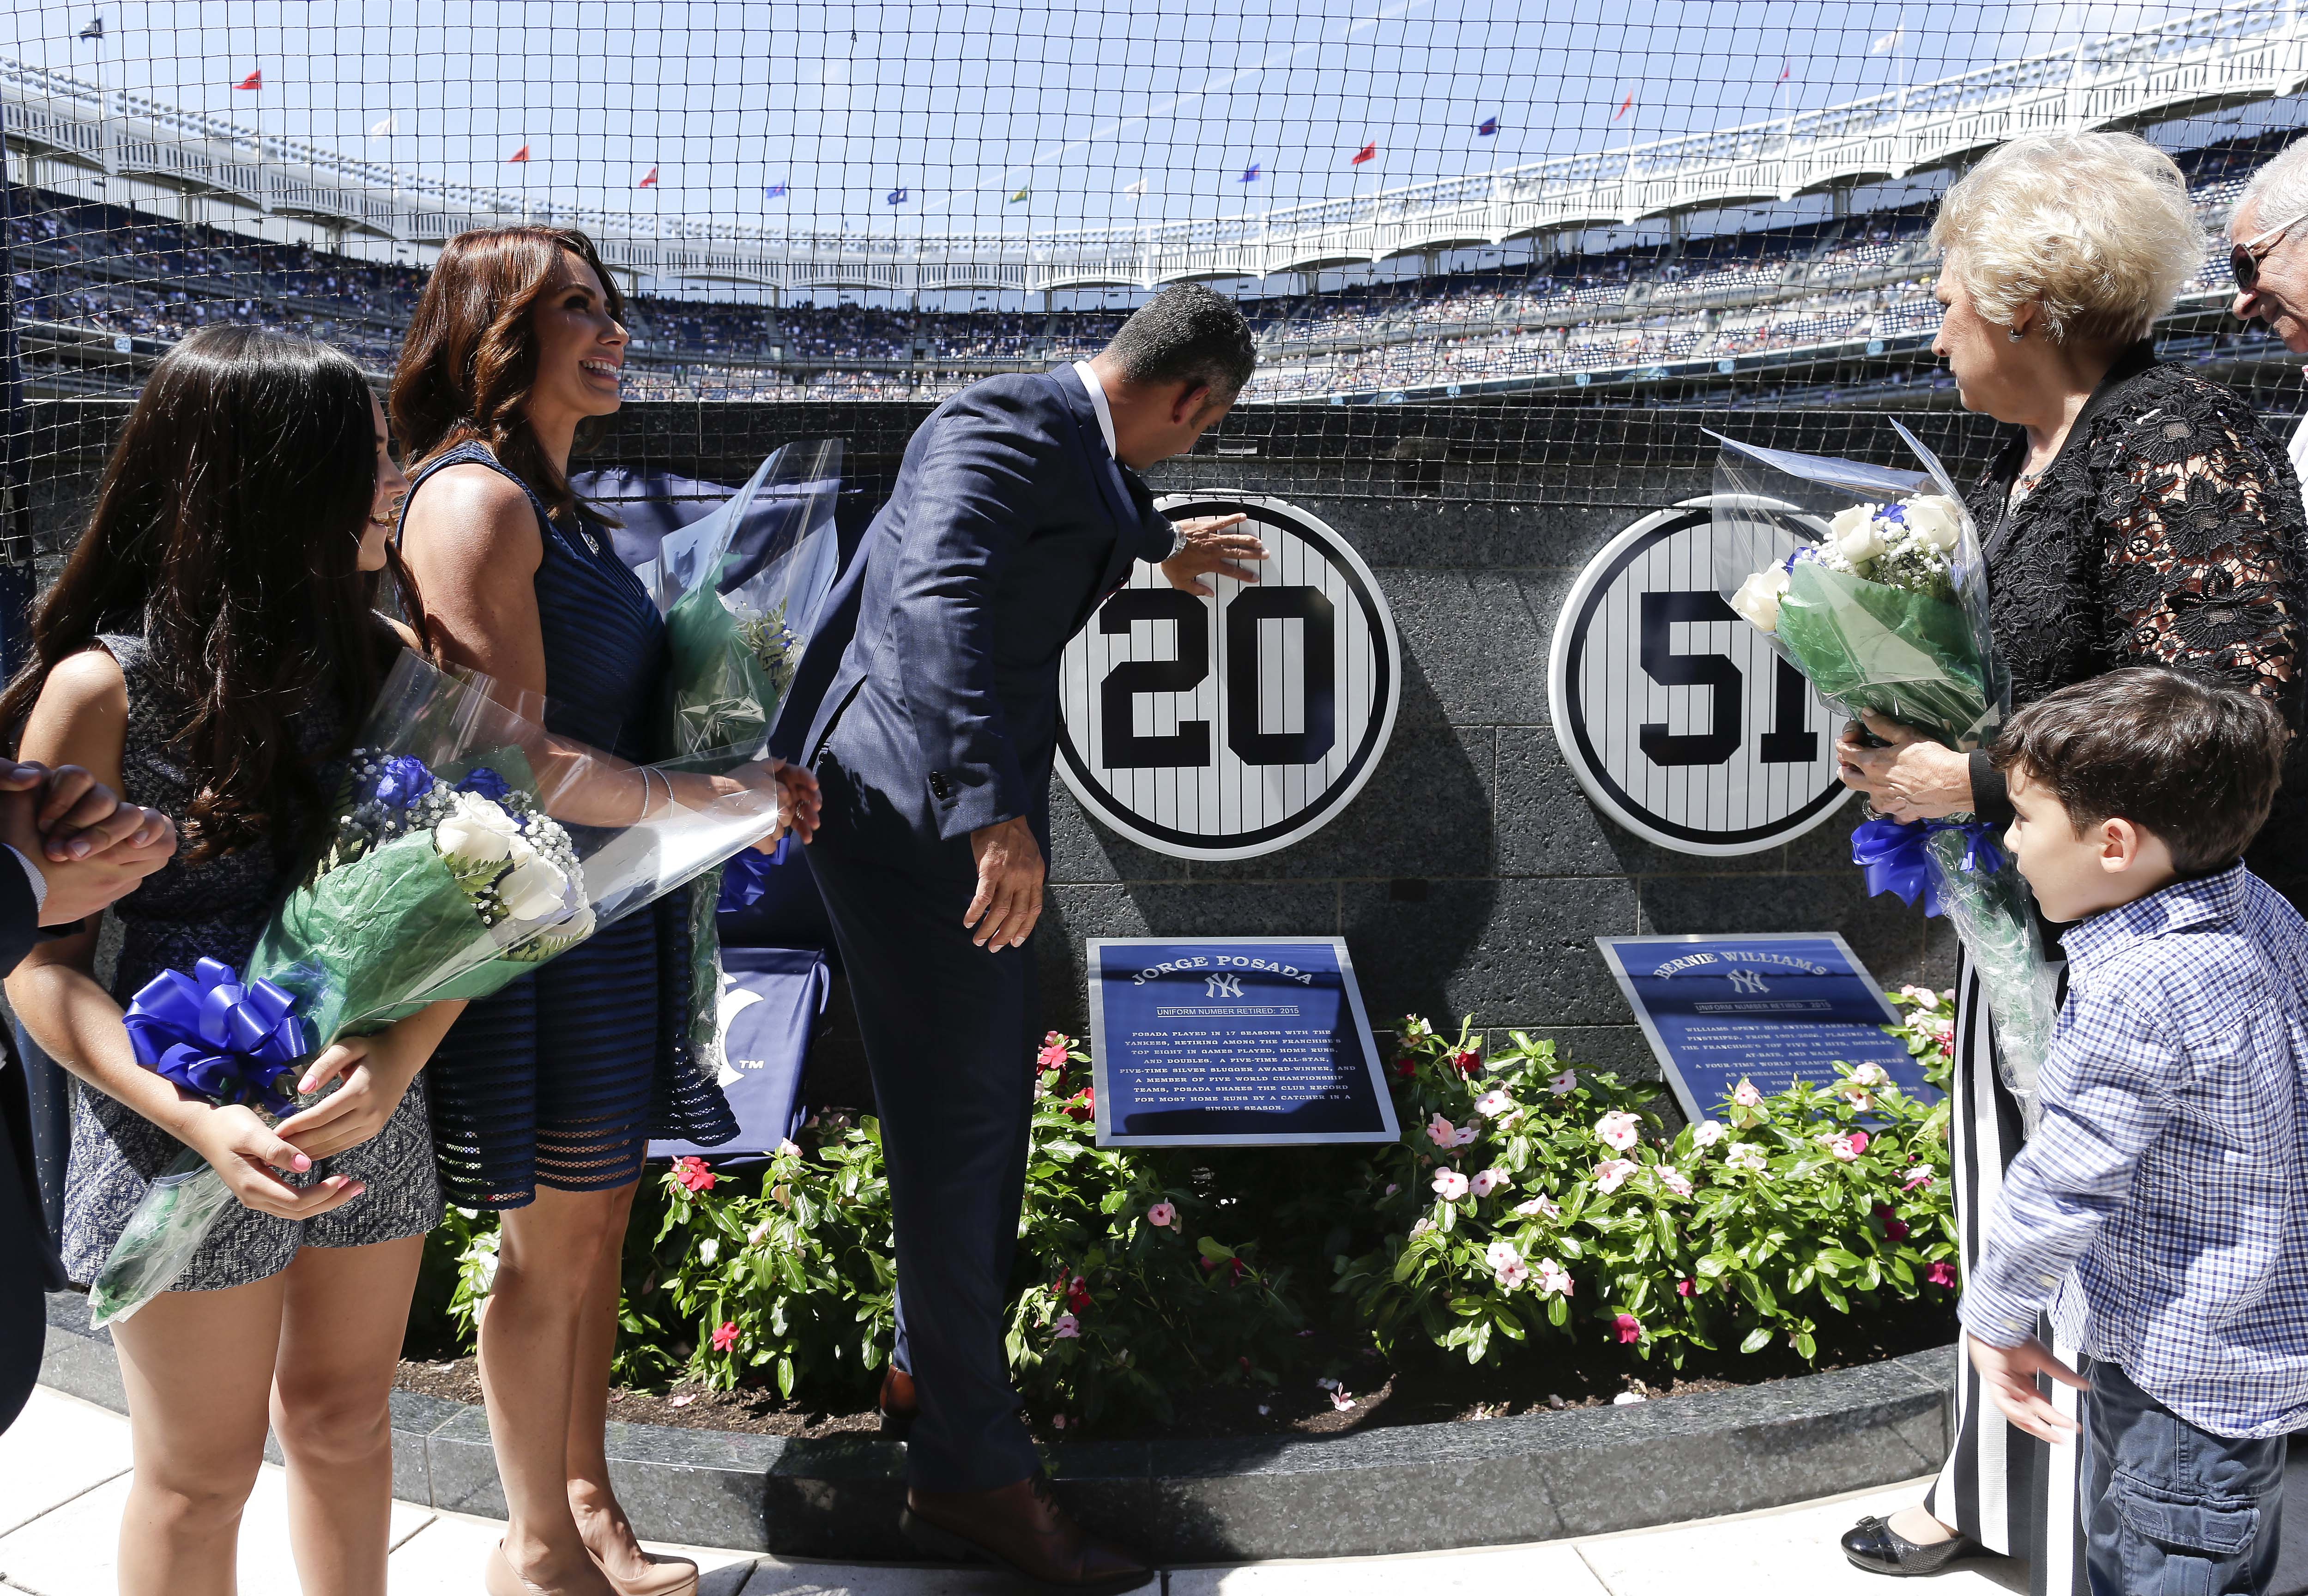 Accompanied by family members, former New York Yankees catcher Jorge Posada touches a plague with his jersey number on a wall in Monument Park during a ceremony retiring his number before a baseball game against the Cleveland Indians, Saturday, Aug. 22, 2